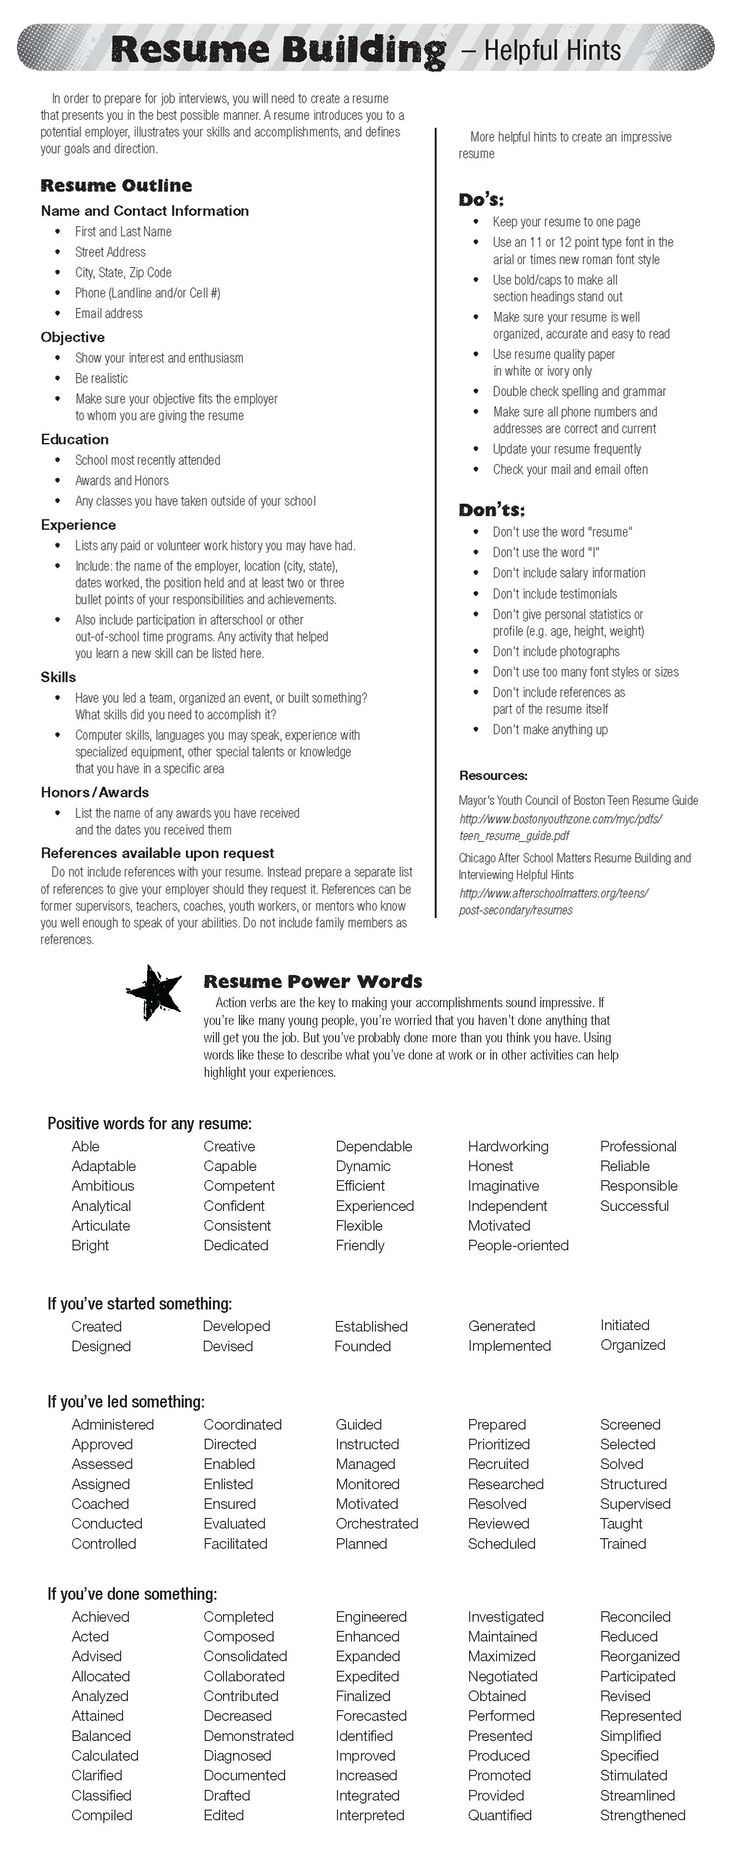 Opposenewapstandardsus  Mesmerizing  Ideas About Resume On Pinterest  Cv Format Resume Cv And  With Inspiring  Ideas About Resume On Pinterest  Cv Format Resume Cv And Resume Templates With Charming Microsoft Word Resume Templates Also Operations Manager Resume In Addition Graphic Design Resumes And Special Skills For Resume As Well As Resume Professional Summary Additionally Help With Resume From Pinterestcom With Opposenewapstandardsus  Inspiring  Ideas About Resume On Pinterest  Cv Format Resume Cv And  With Charming  Ideas About Resume On Pinterest  Cv Format Resume Cv And Resume Templates And Mesmerizing Microsoft Word Resume Templates Also Operations Manager Resume In Addition Graphic Design Resumes From Pinterestcom